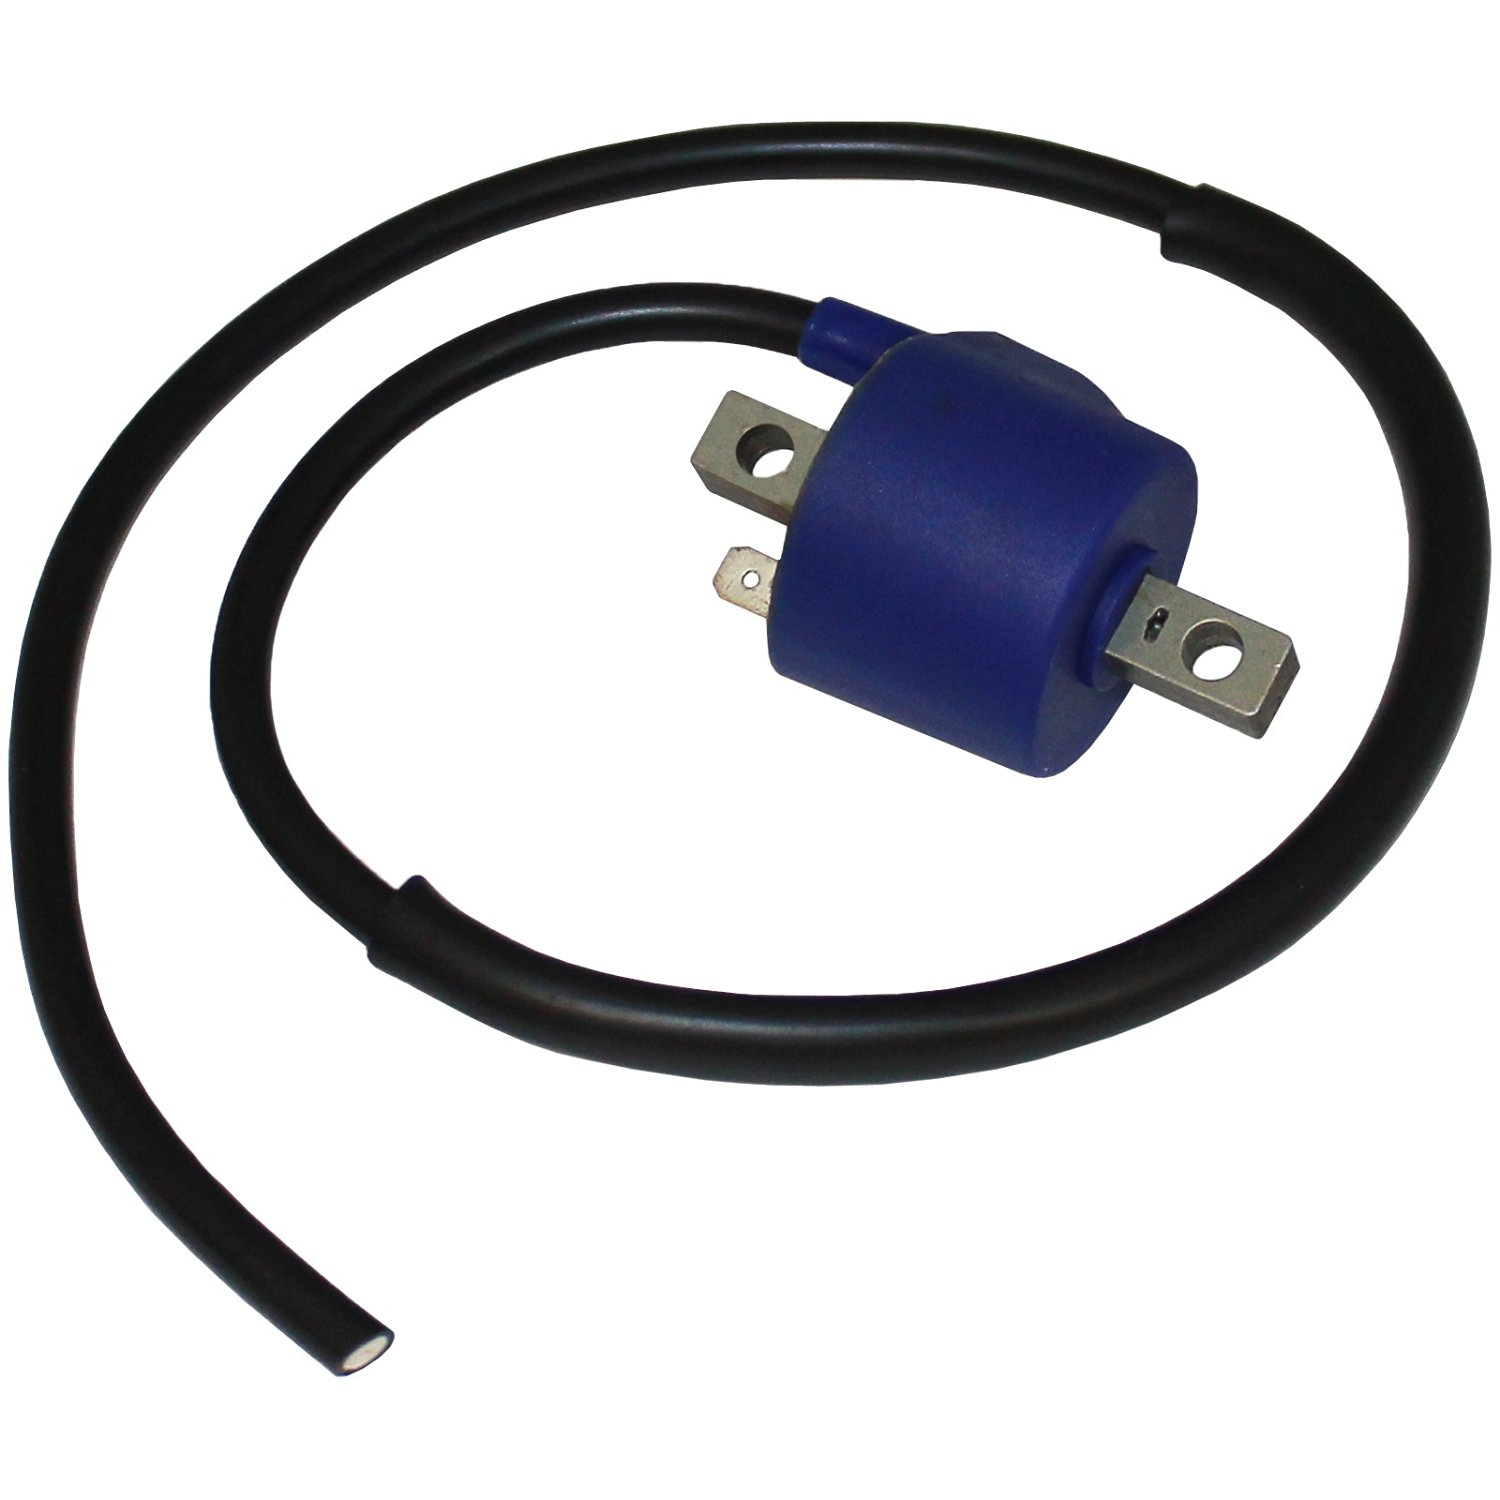 Cheap Kdx 200cc Find Deals On Line At Alibabacom 1996 200 Wiring Diagram Get Quotations Caltric Ignition Coil Fits Kawasaki Kdx200 Kdx200c Kdx200e 1987 1994